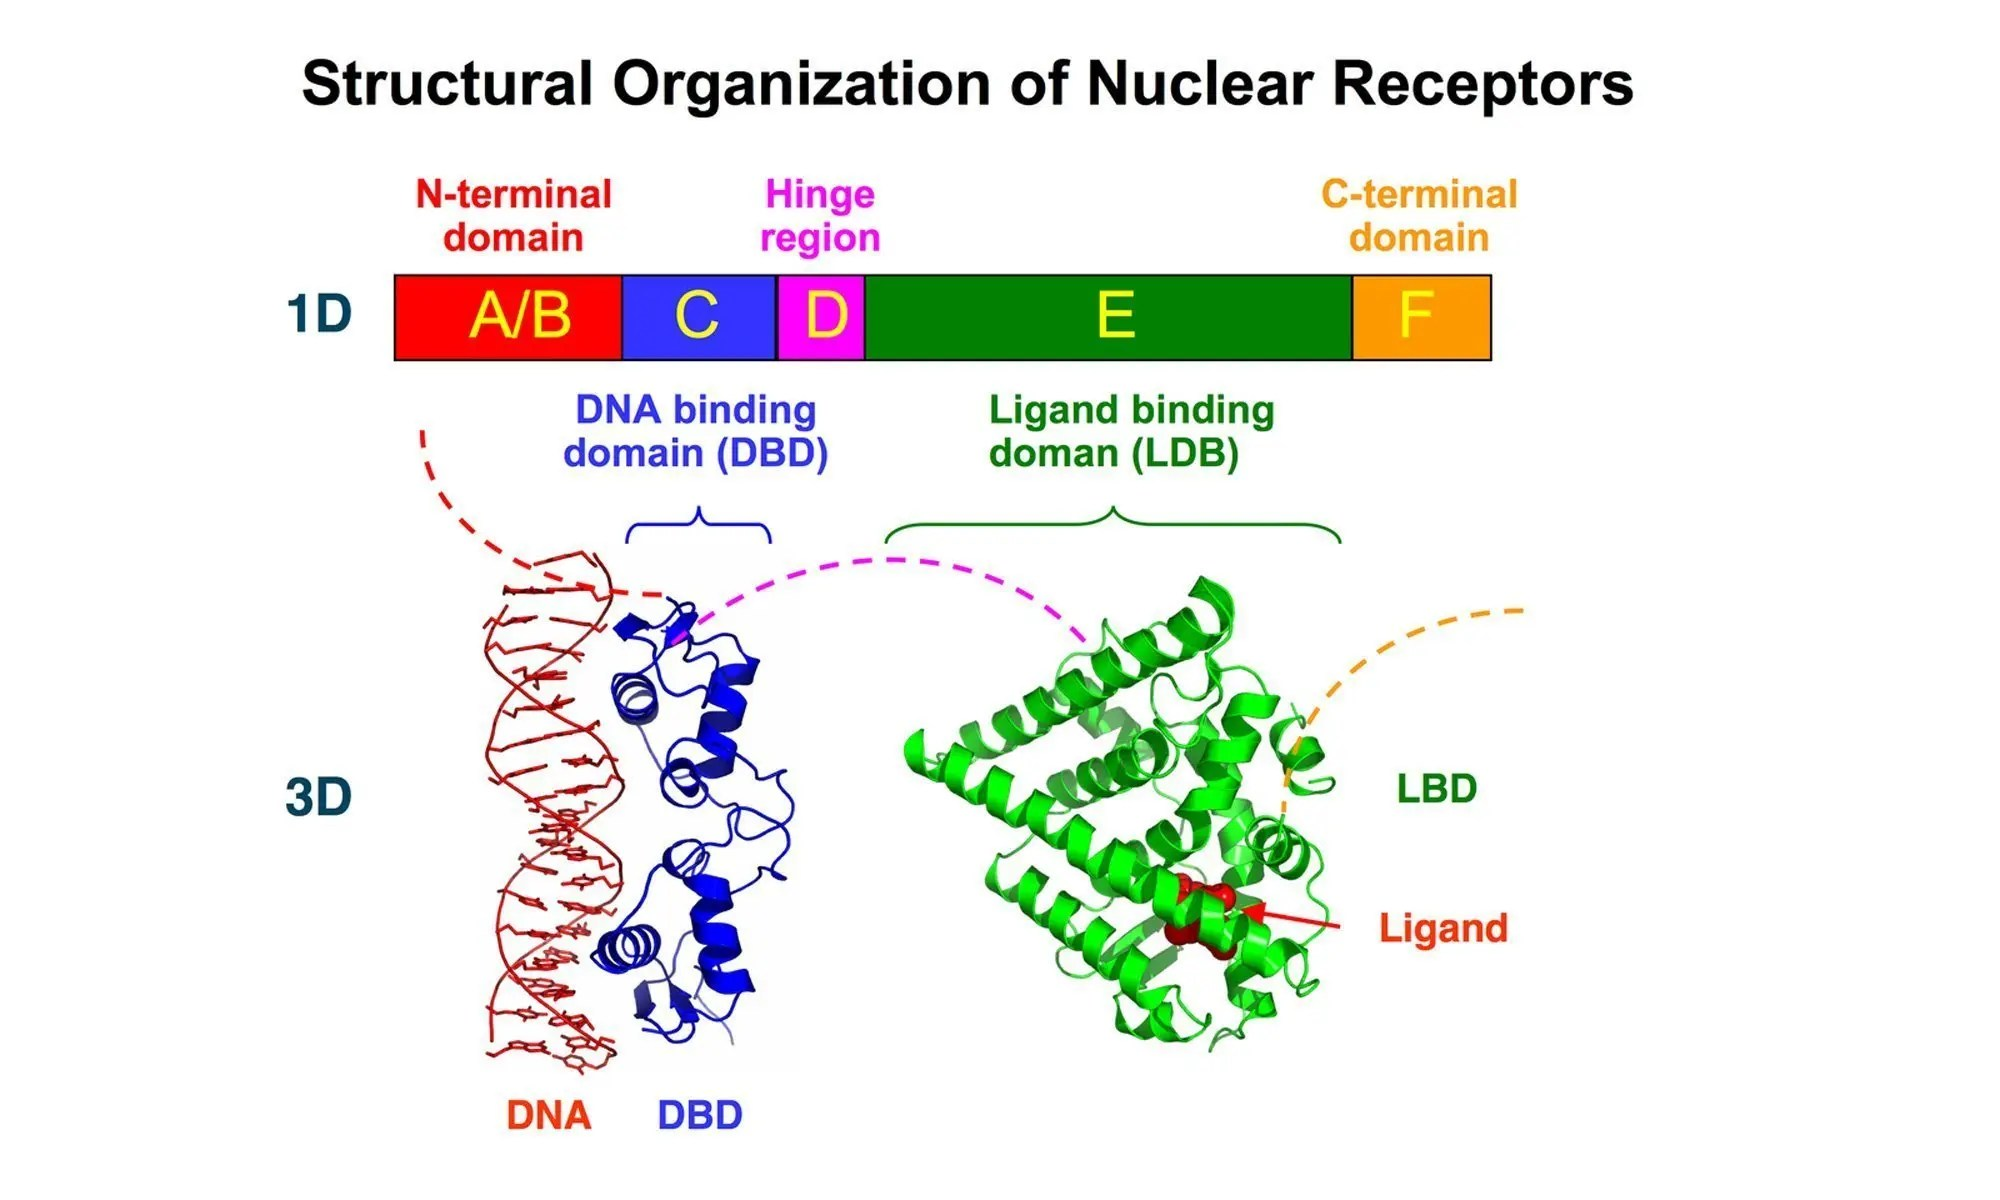 image of Nuclear Receptors